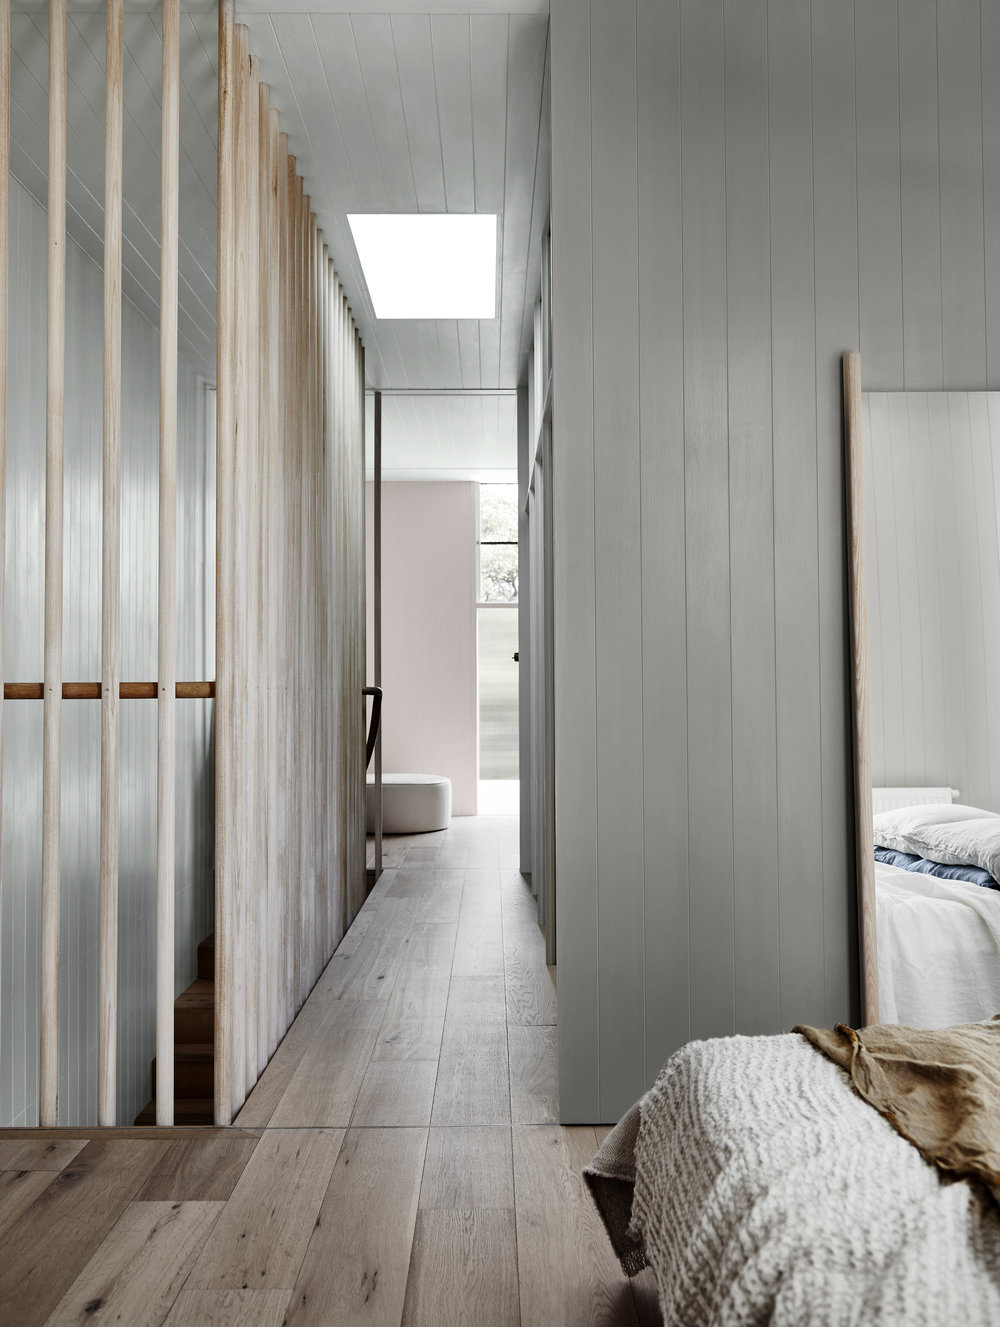 Dulux Colour Trends 2018  –  Essential Palette .Right wall in Dulux Flooded Gum, left wall in Dulux Terrace White and rear wall in Mornington Half